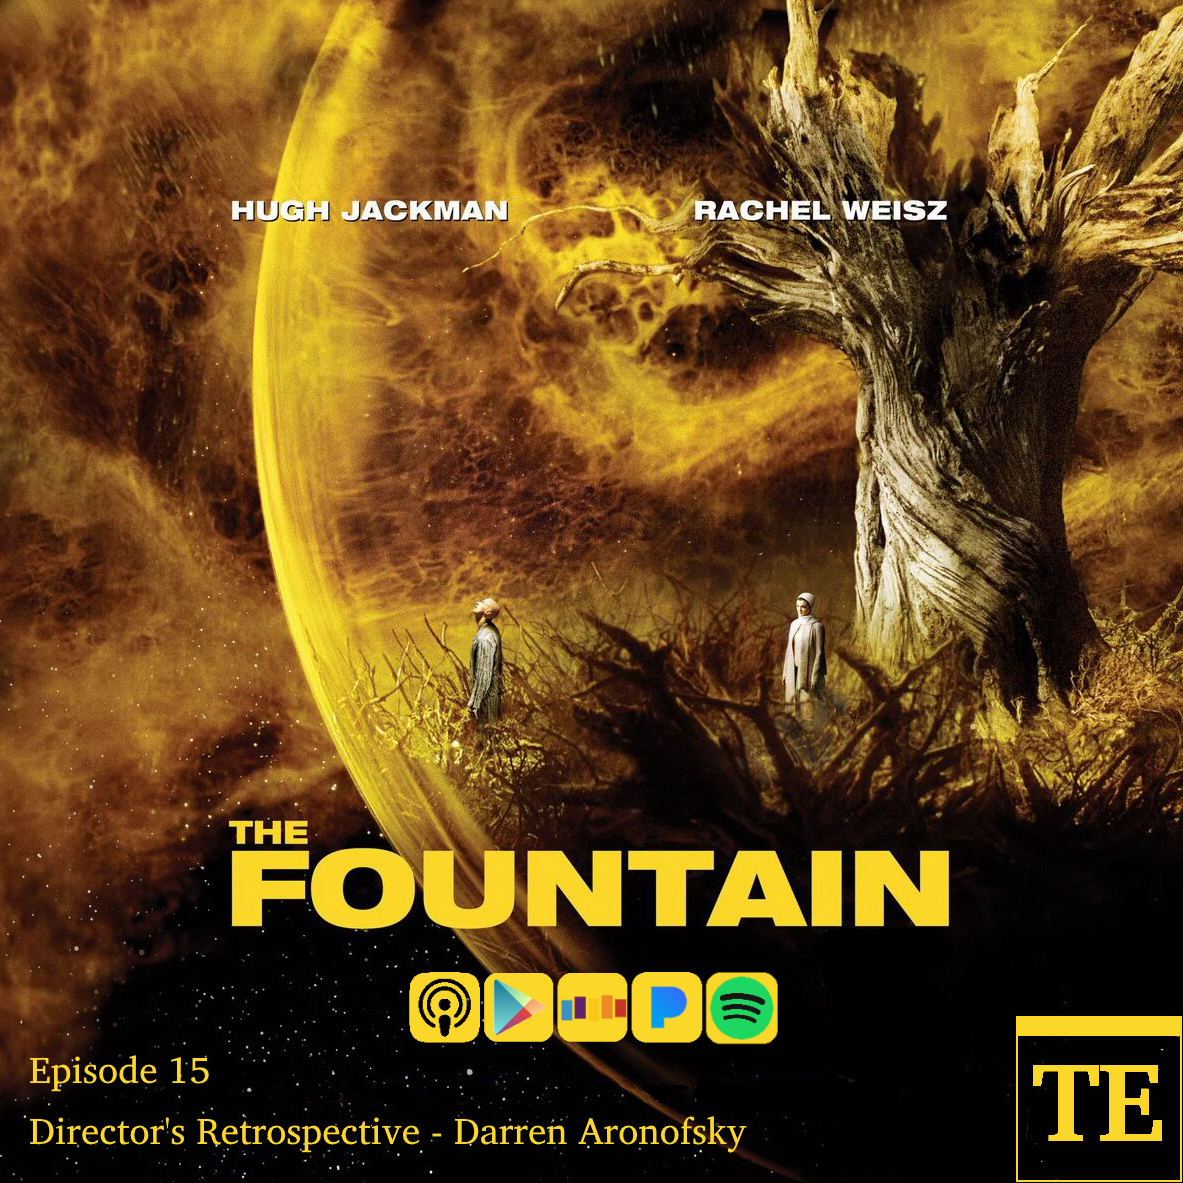 Thematic Elements Podcast - Episode 15 - The Fountain (2006)